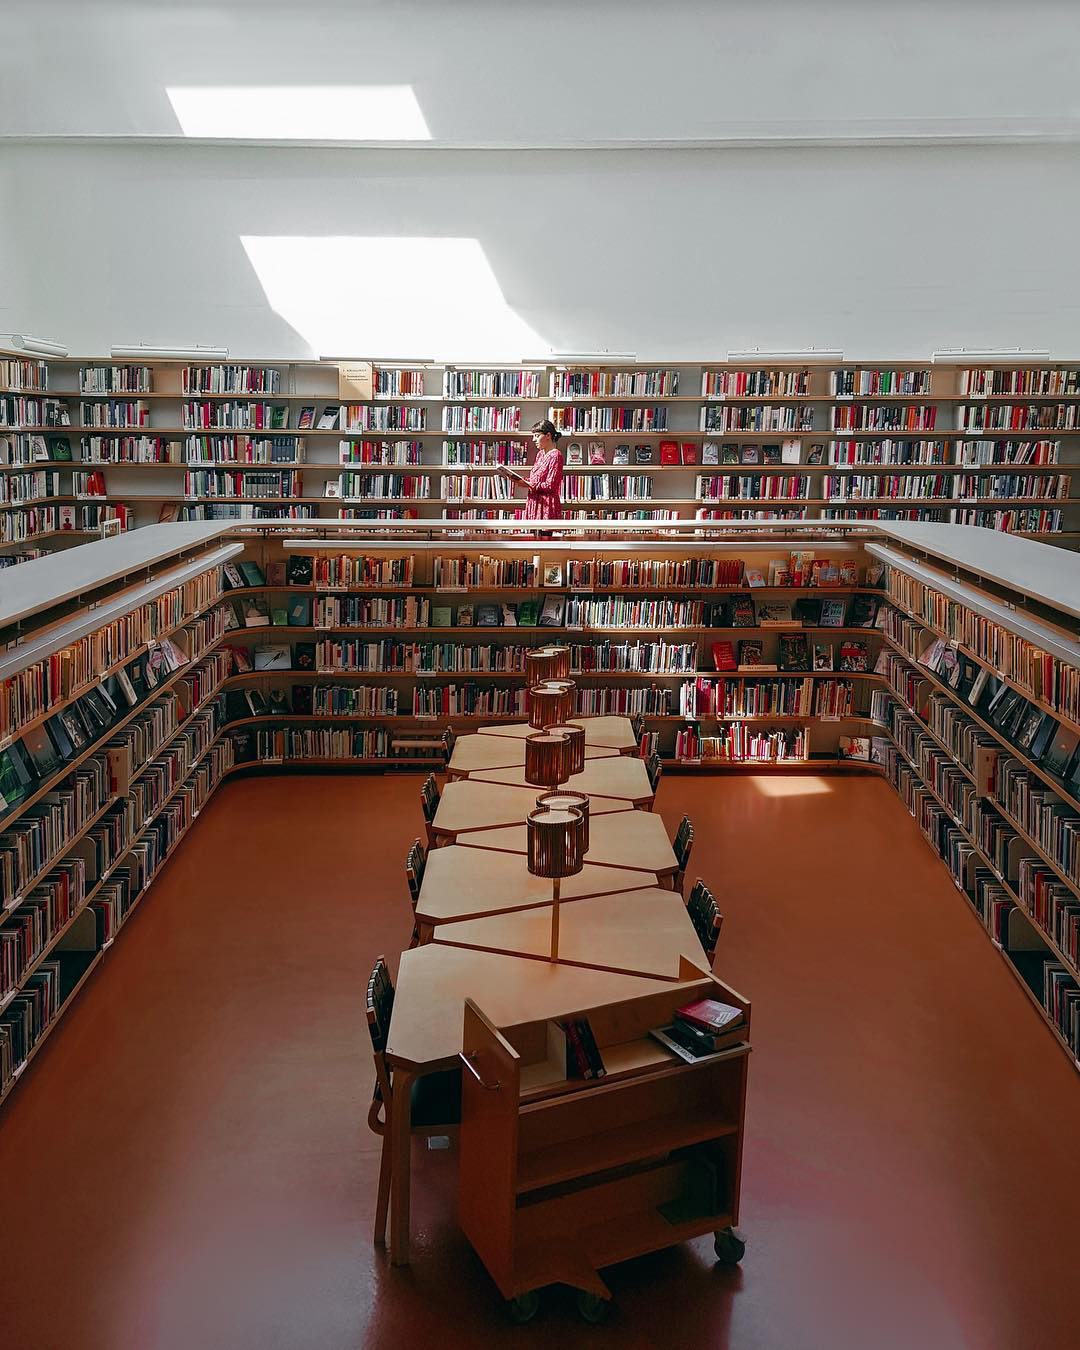 Immerse in the Architectural Wonder of Rovaniemi City Library